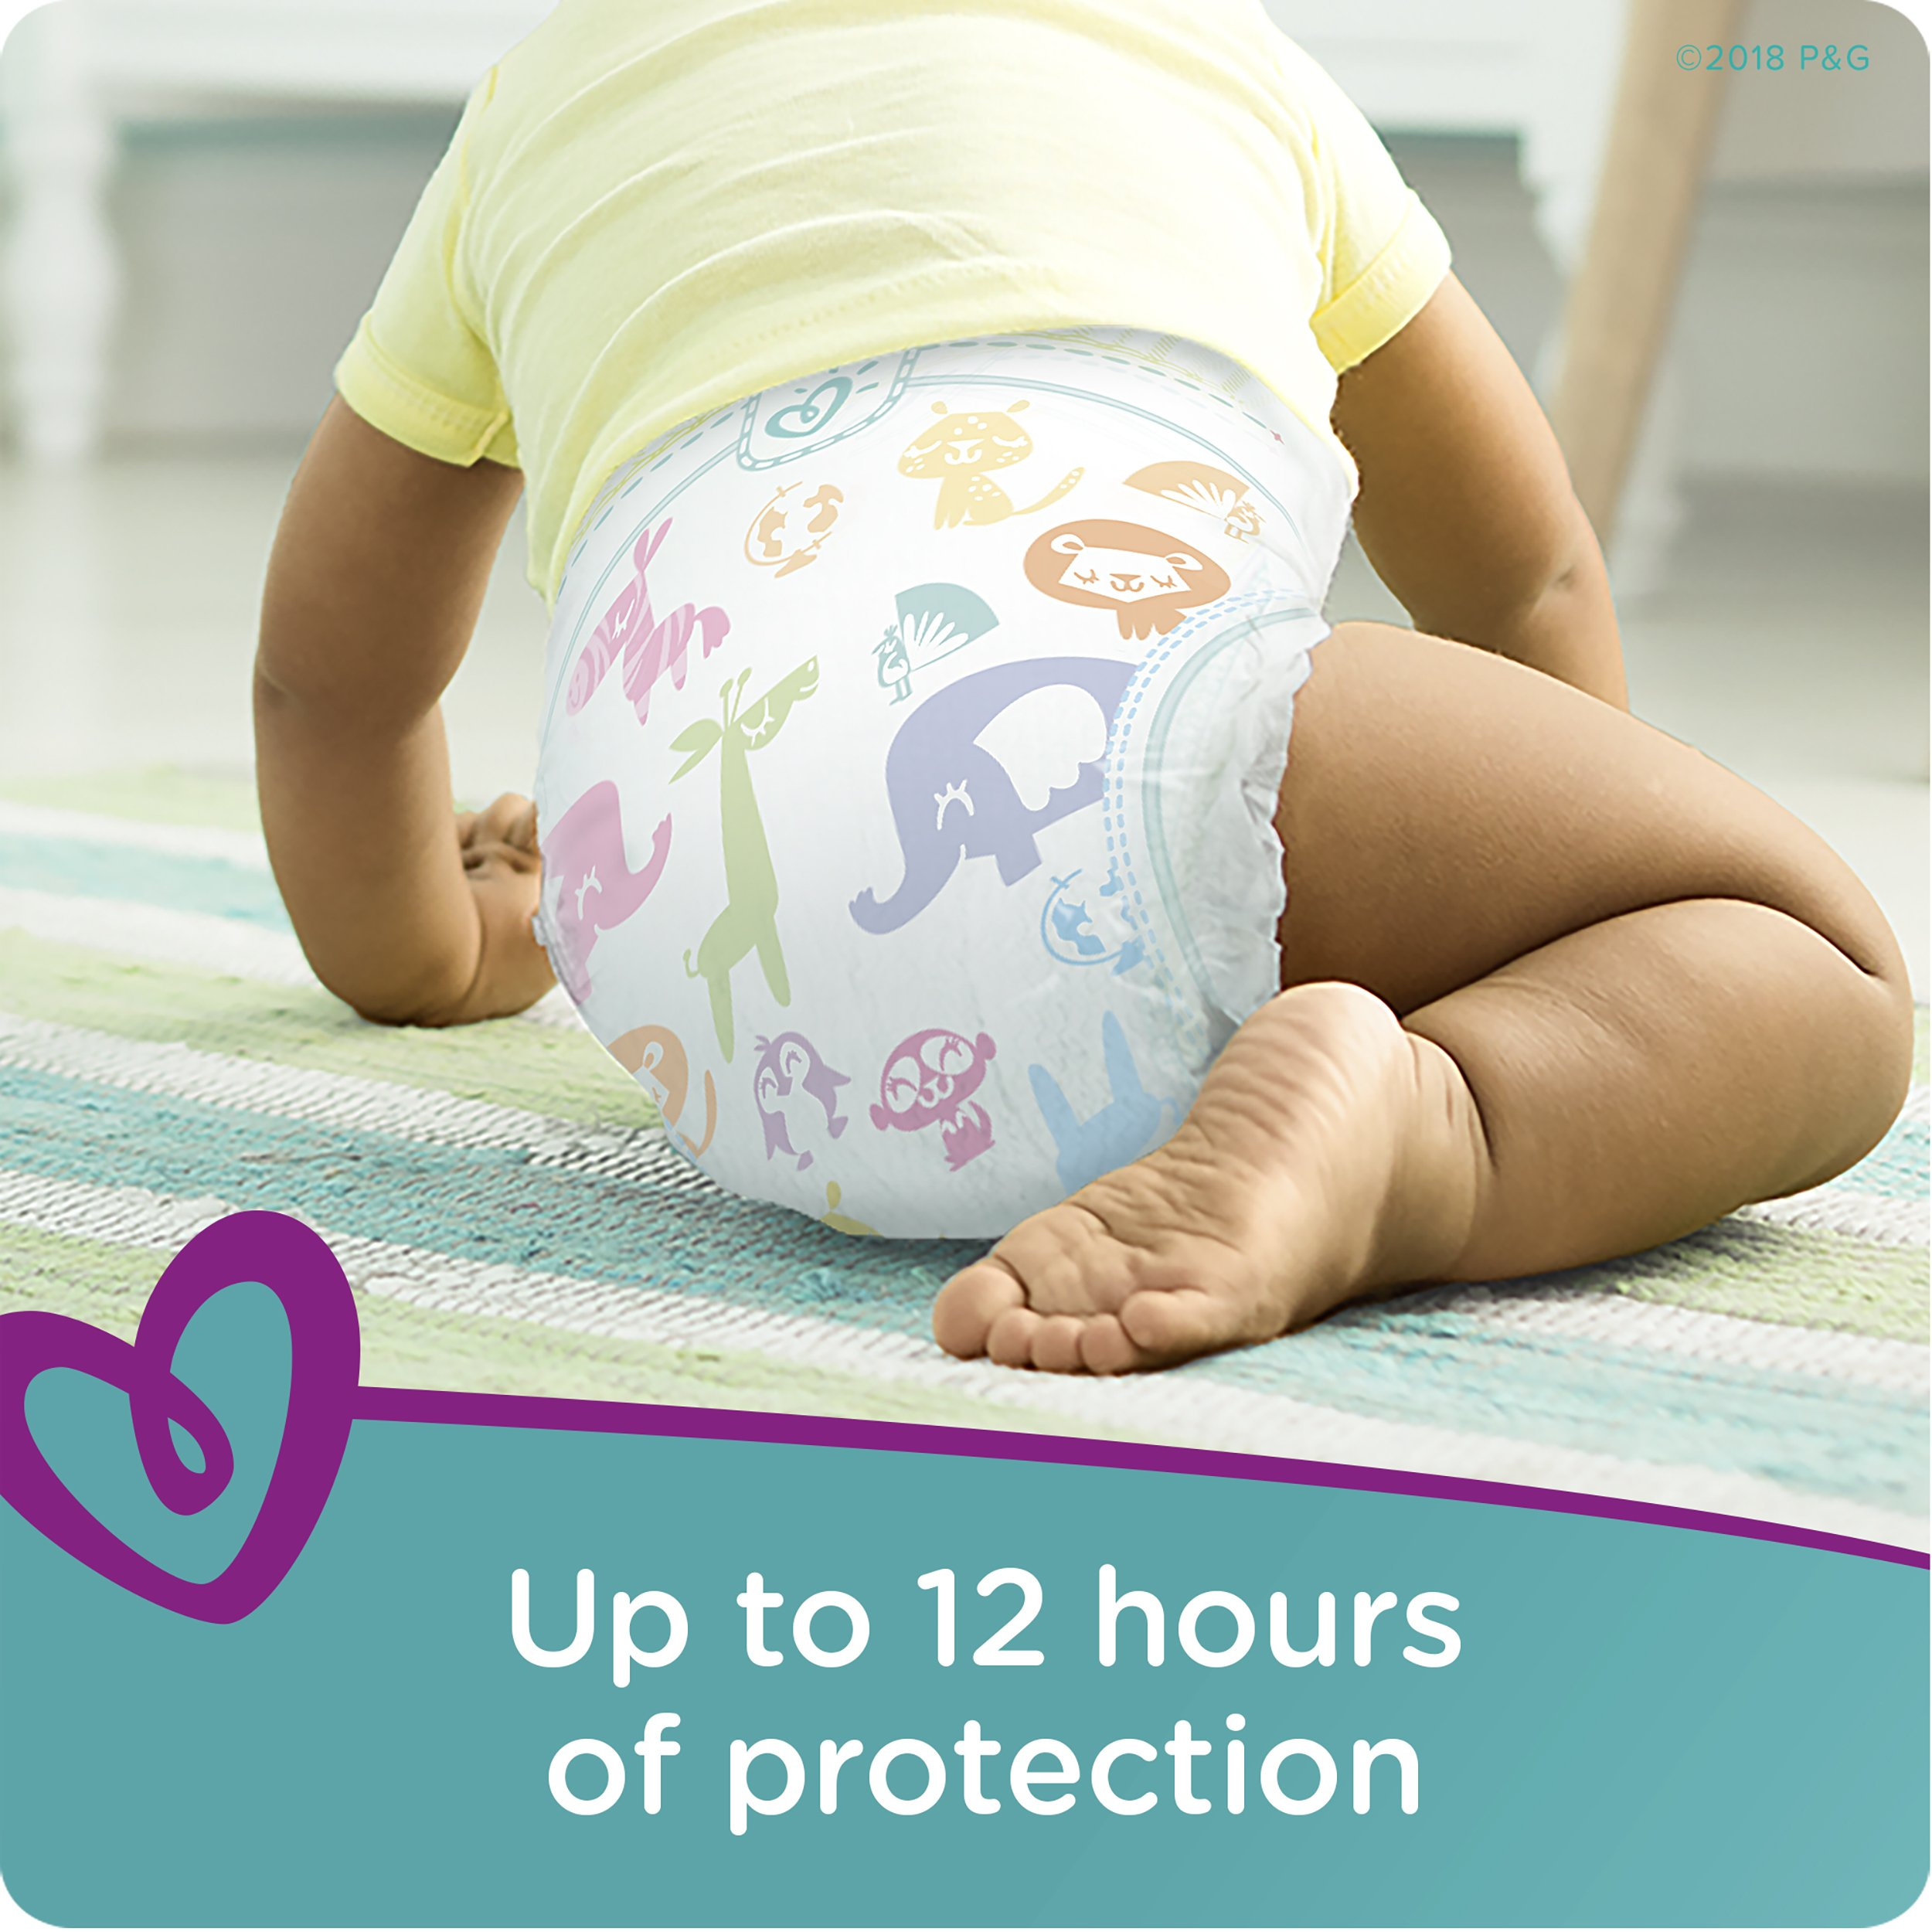 Pampers Cruisers Disposable Diapers Size 6, 108 Count by Pampers (Image #5)